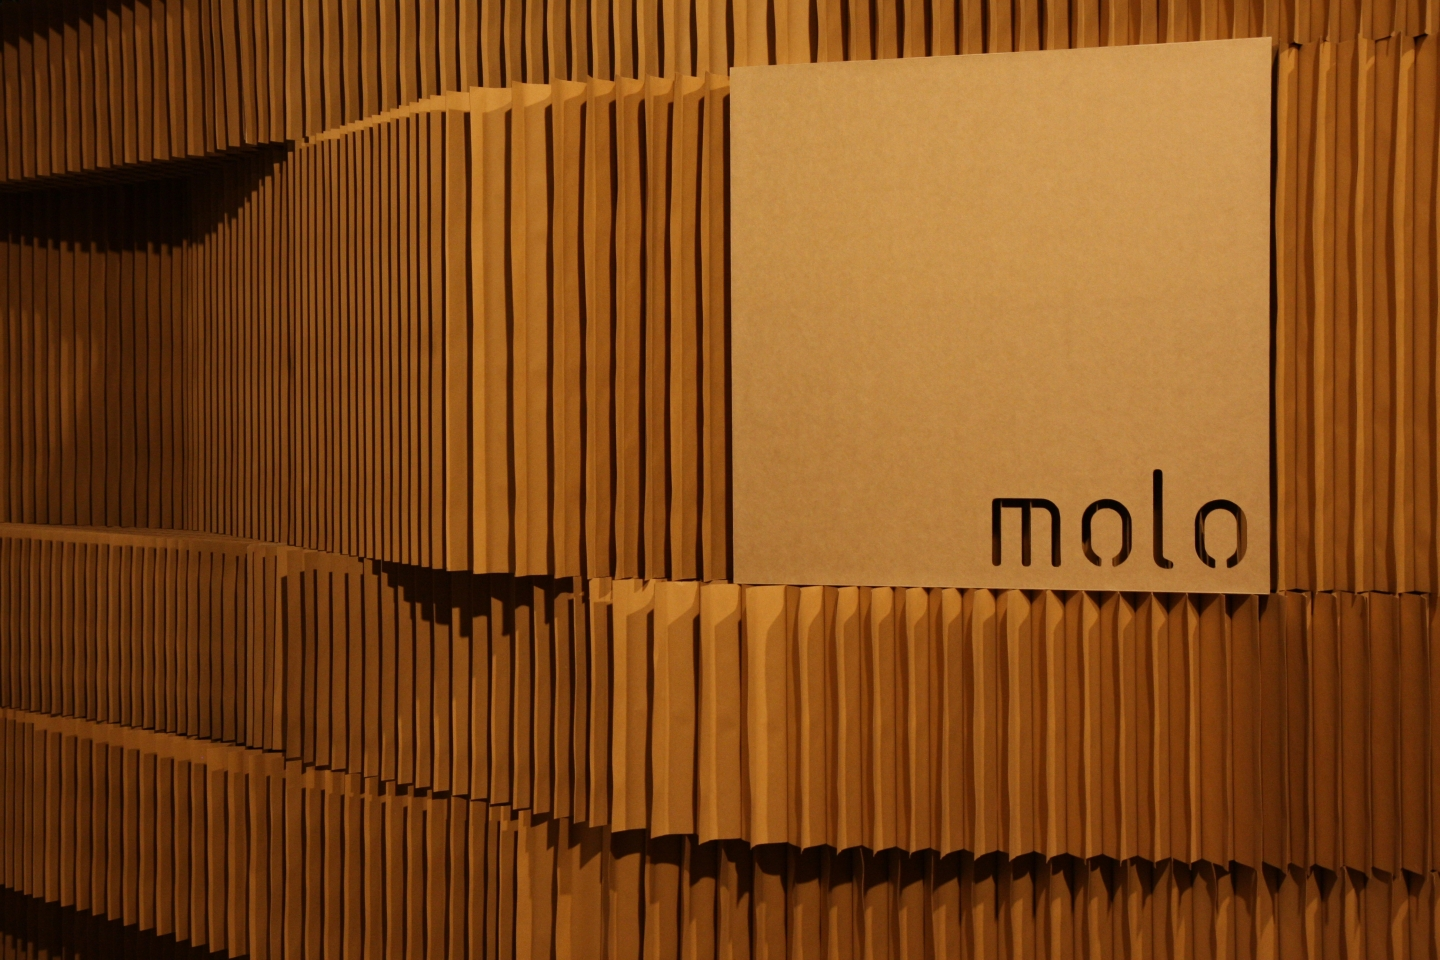 detail of molo signage inserted into the gaps of stacked softblocks.